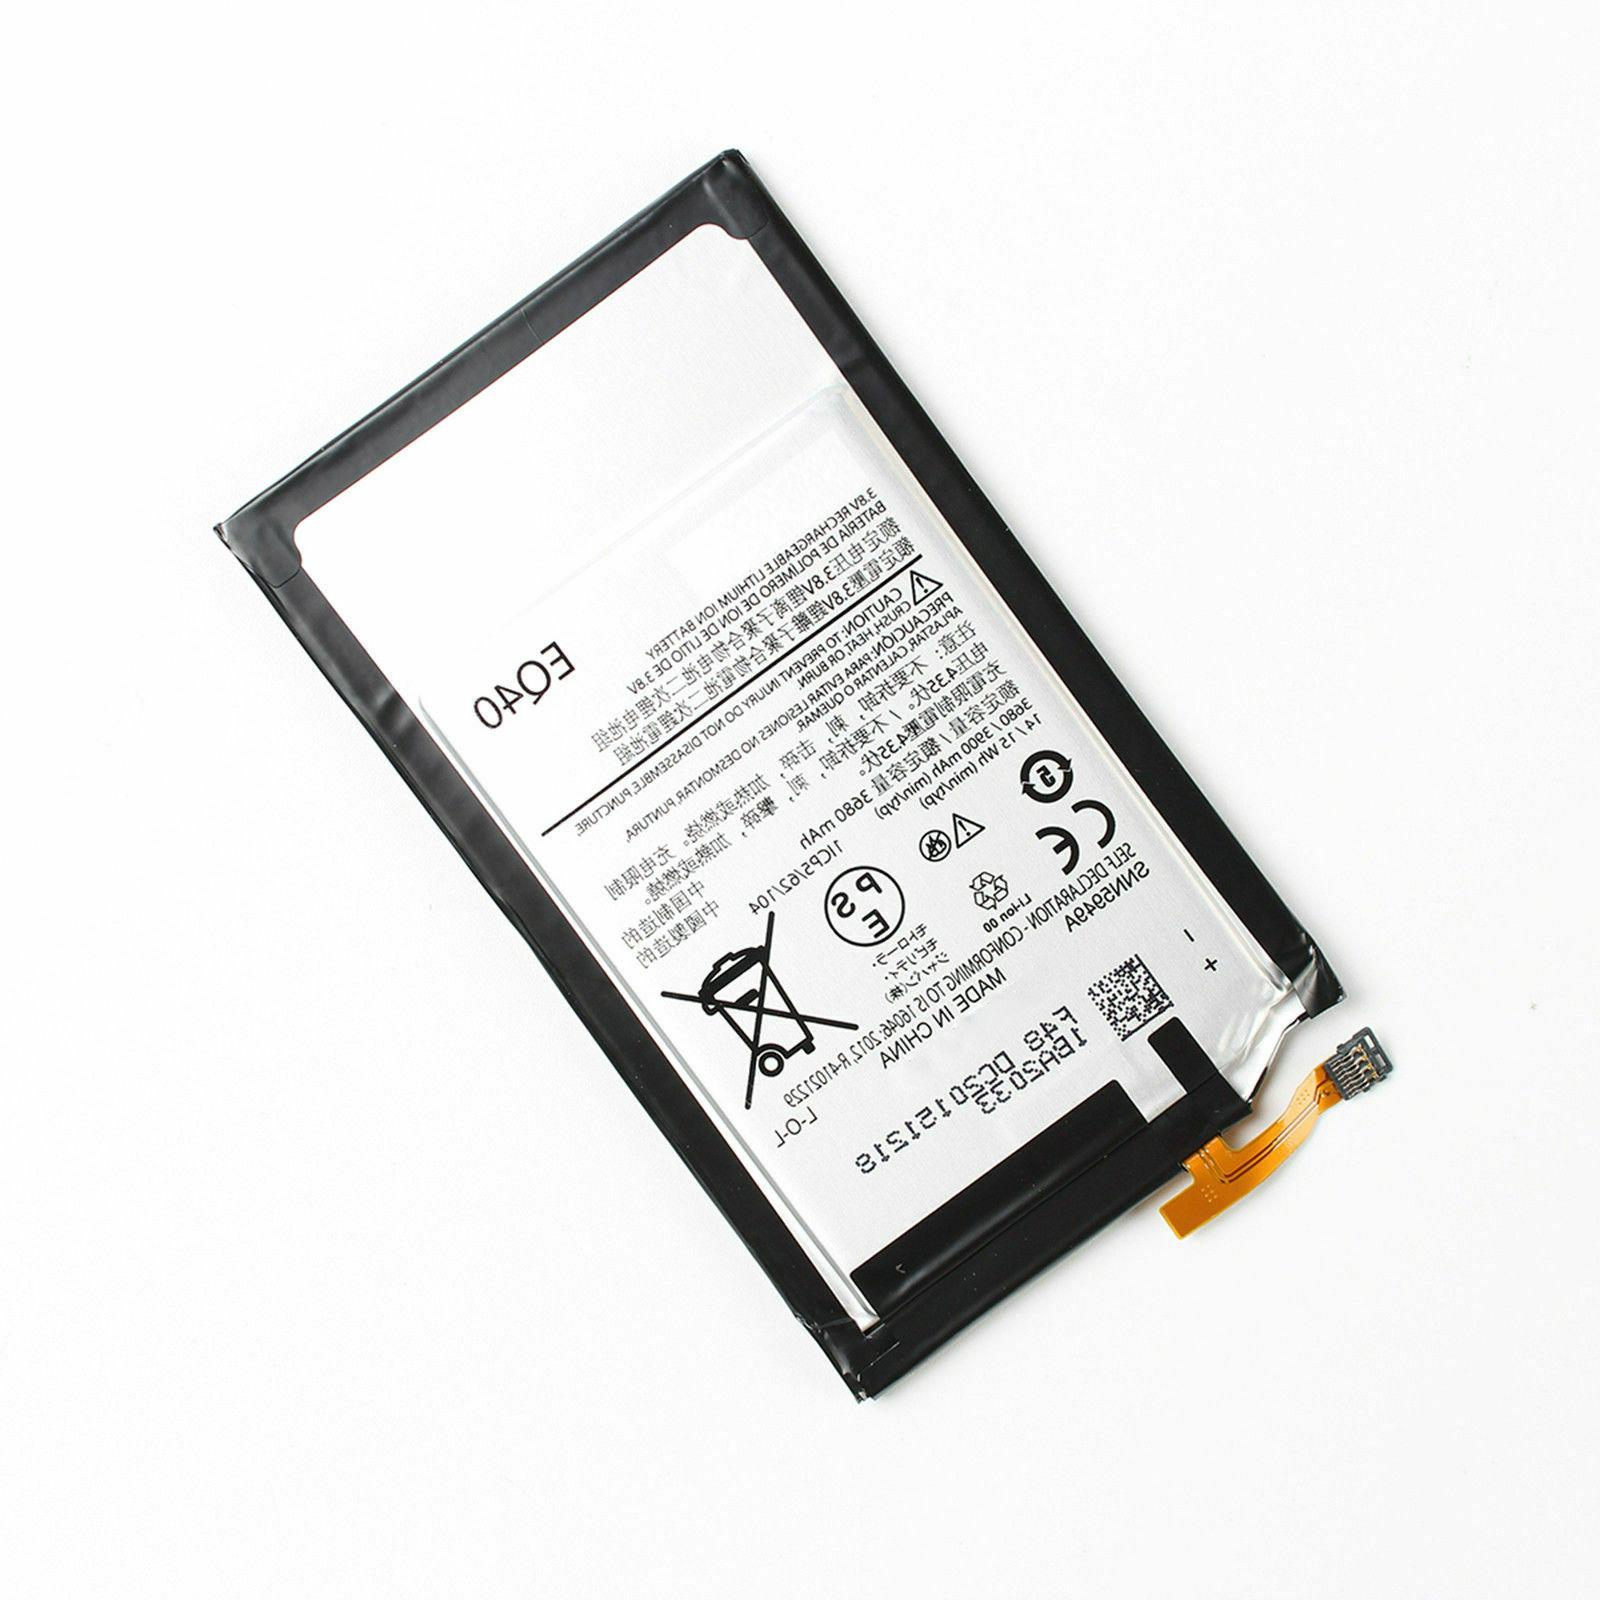 OEM Replacement Battery For XT1254